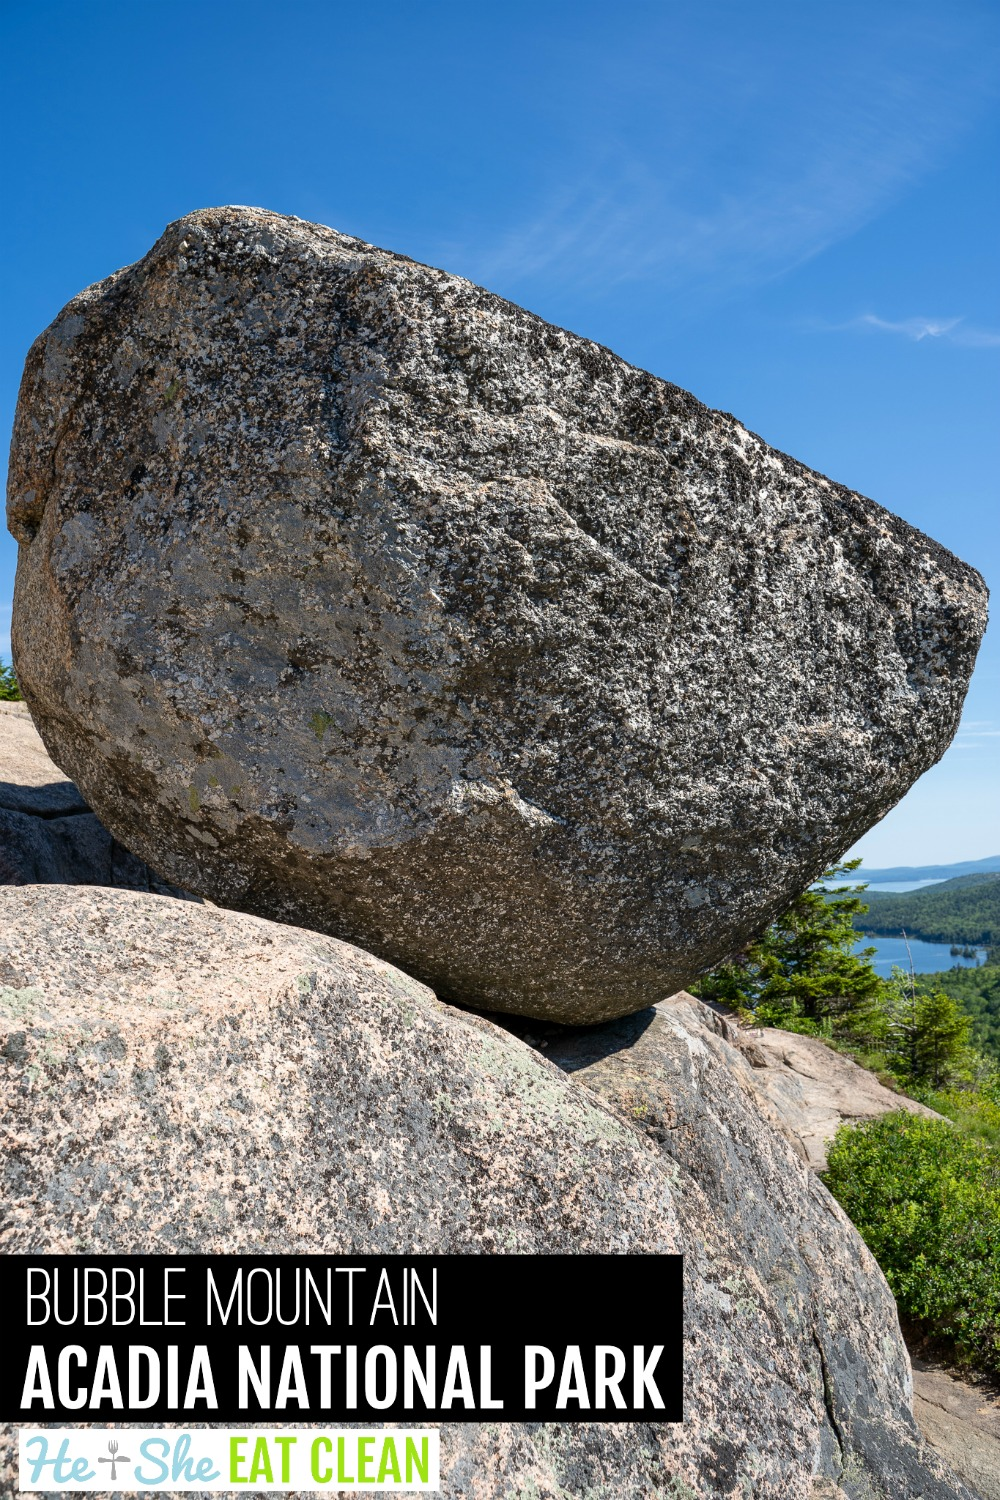 large rock on the side of a mountain in Acadia National Park with Jordan Pond in the background in Acadia National Park